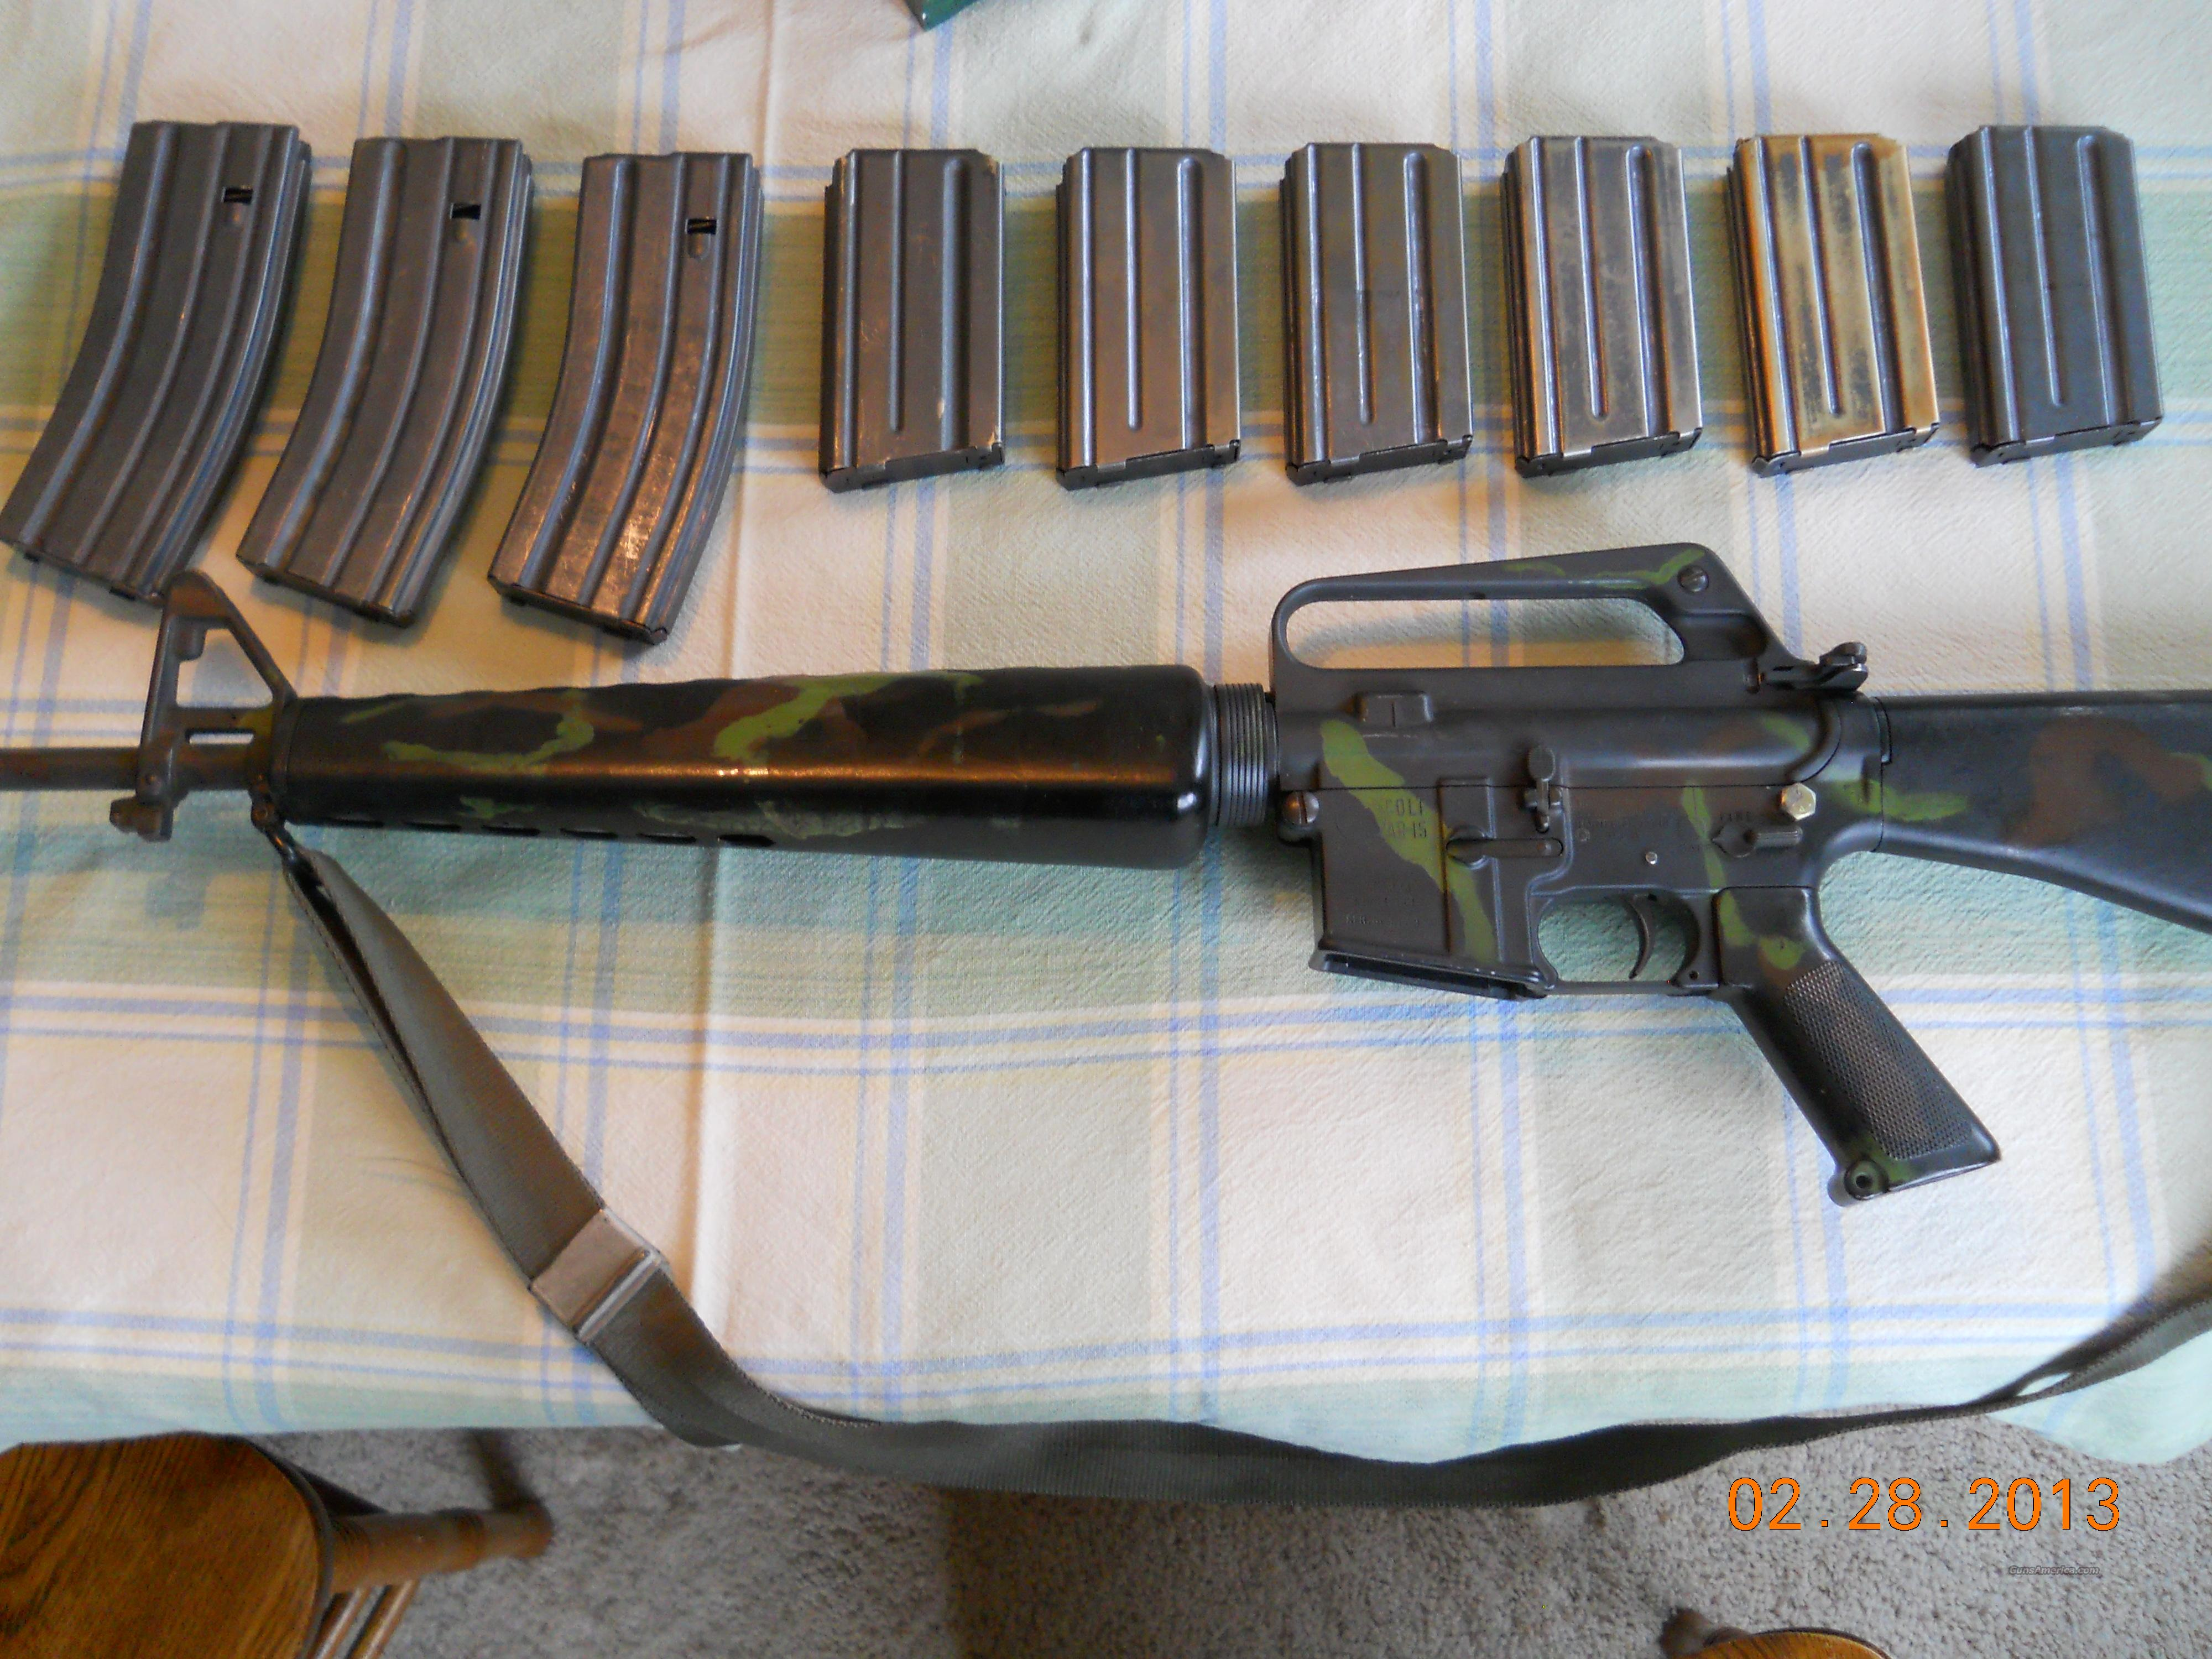 "LOOK!! PRE-BAN COLT AR-15 MODEL SP1 .223 20"" BARREL + 9 MAGZINES!!  Guns > Rifles > Colt Military/Tactical Rifles"